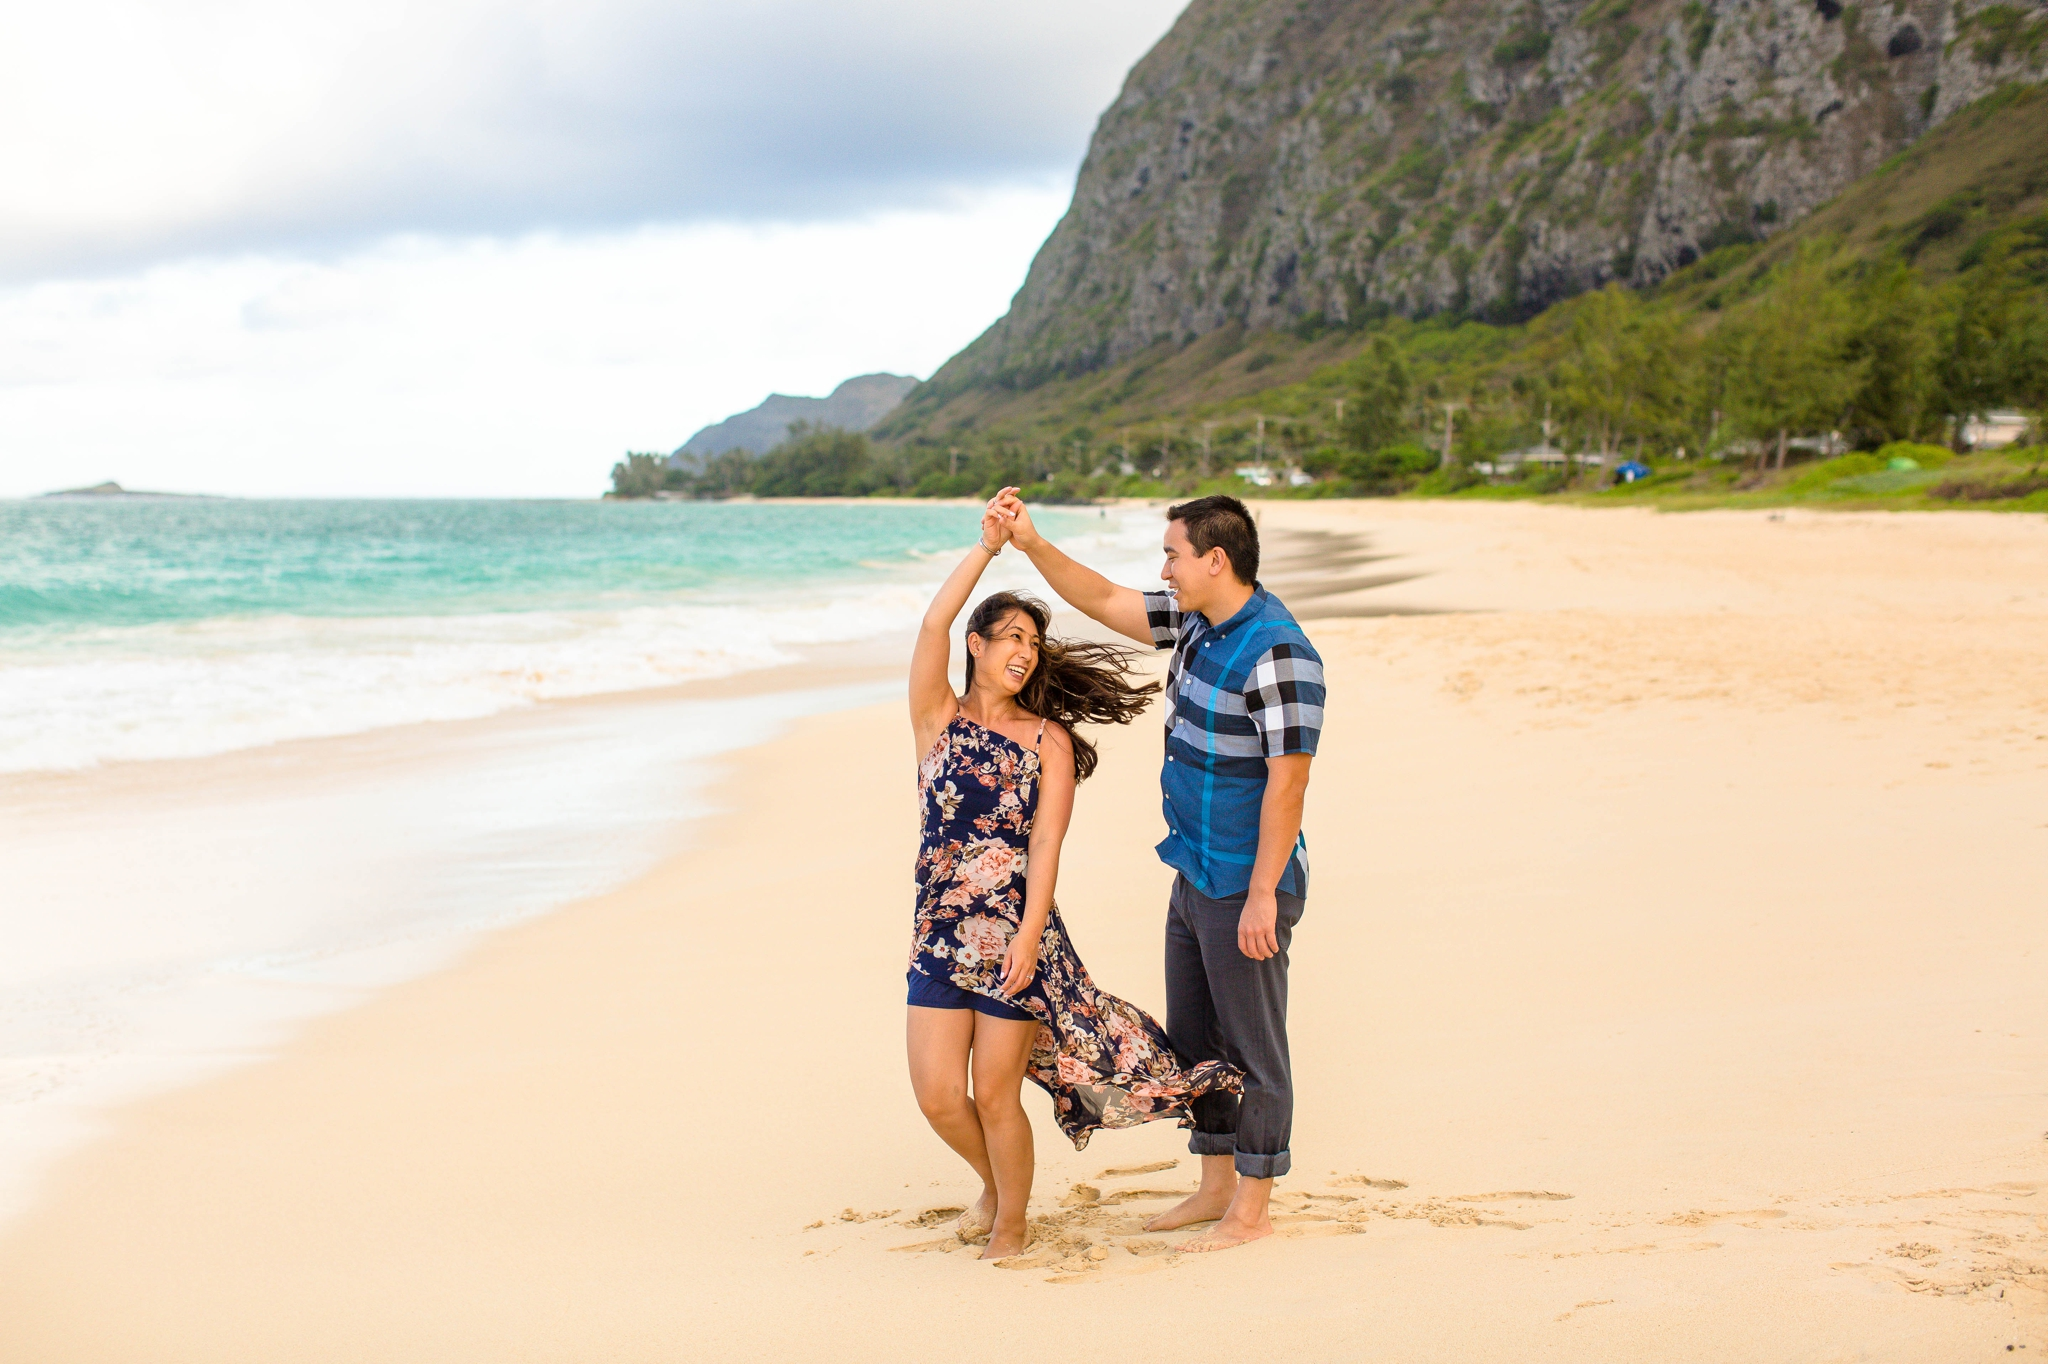 engagement photography session at waimanalo beach park - couple is dancing and twirling in the sand with the ocean and the mountains in the back ground - oahu hawaii wedding photographer